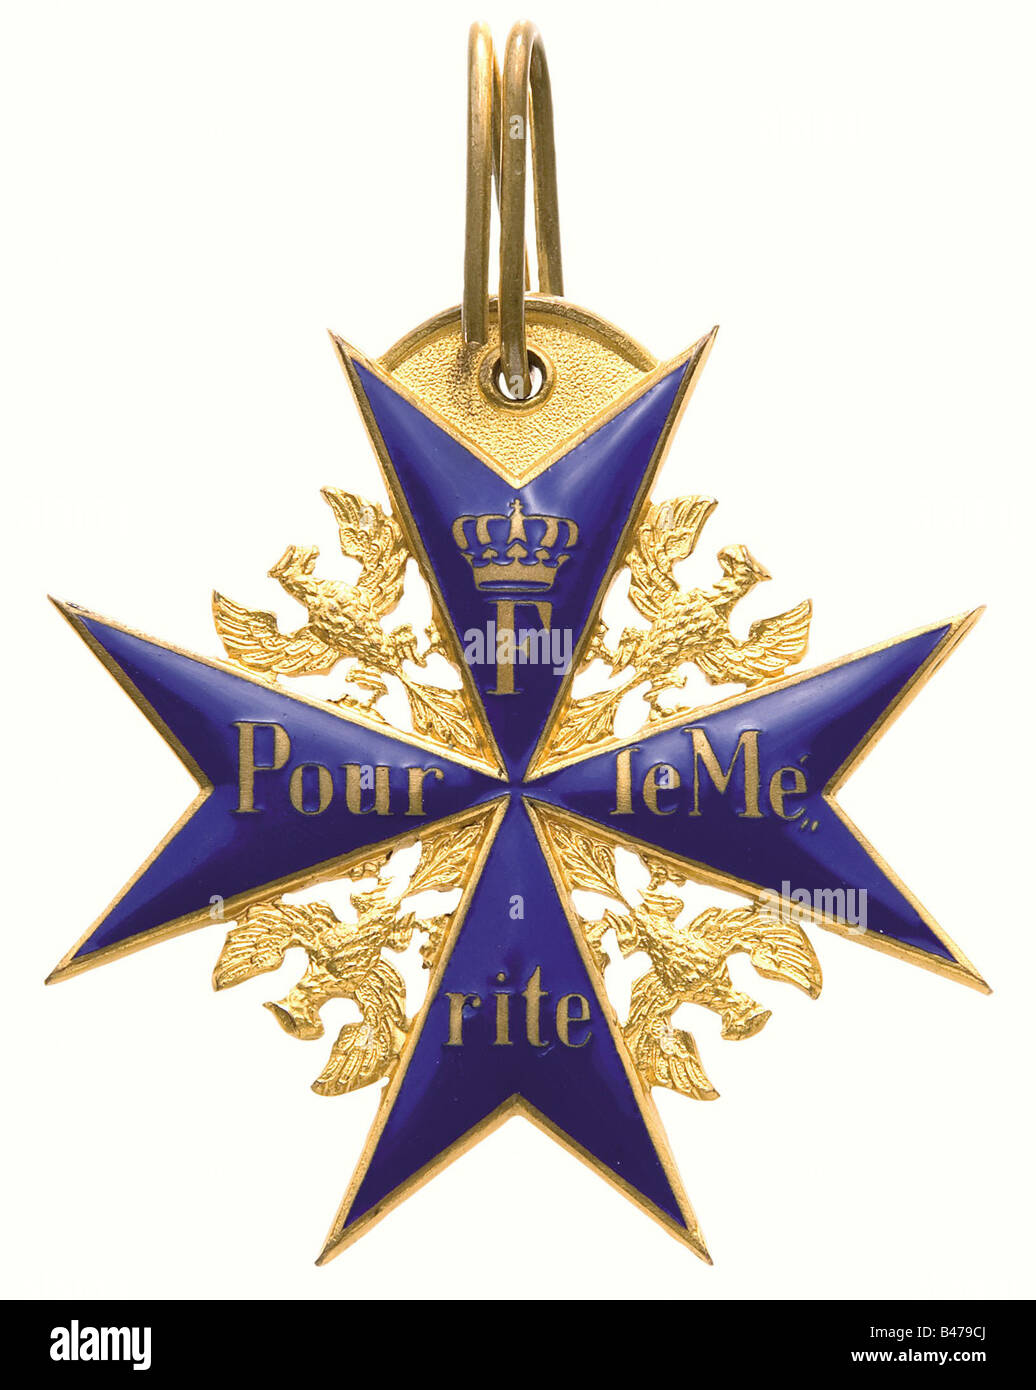 Ernst Udet - Pour le mérite., Display item 1928, present of the jewellers and medal makers Hemmerle Brothers - Stock Image